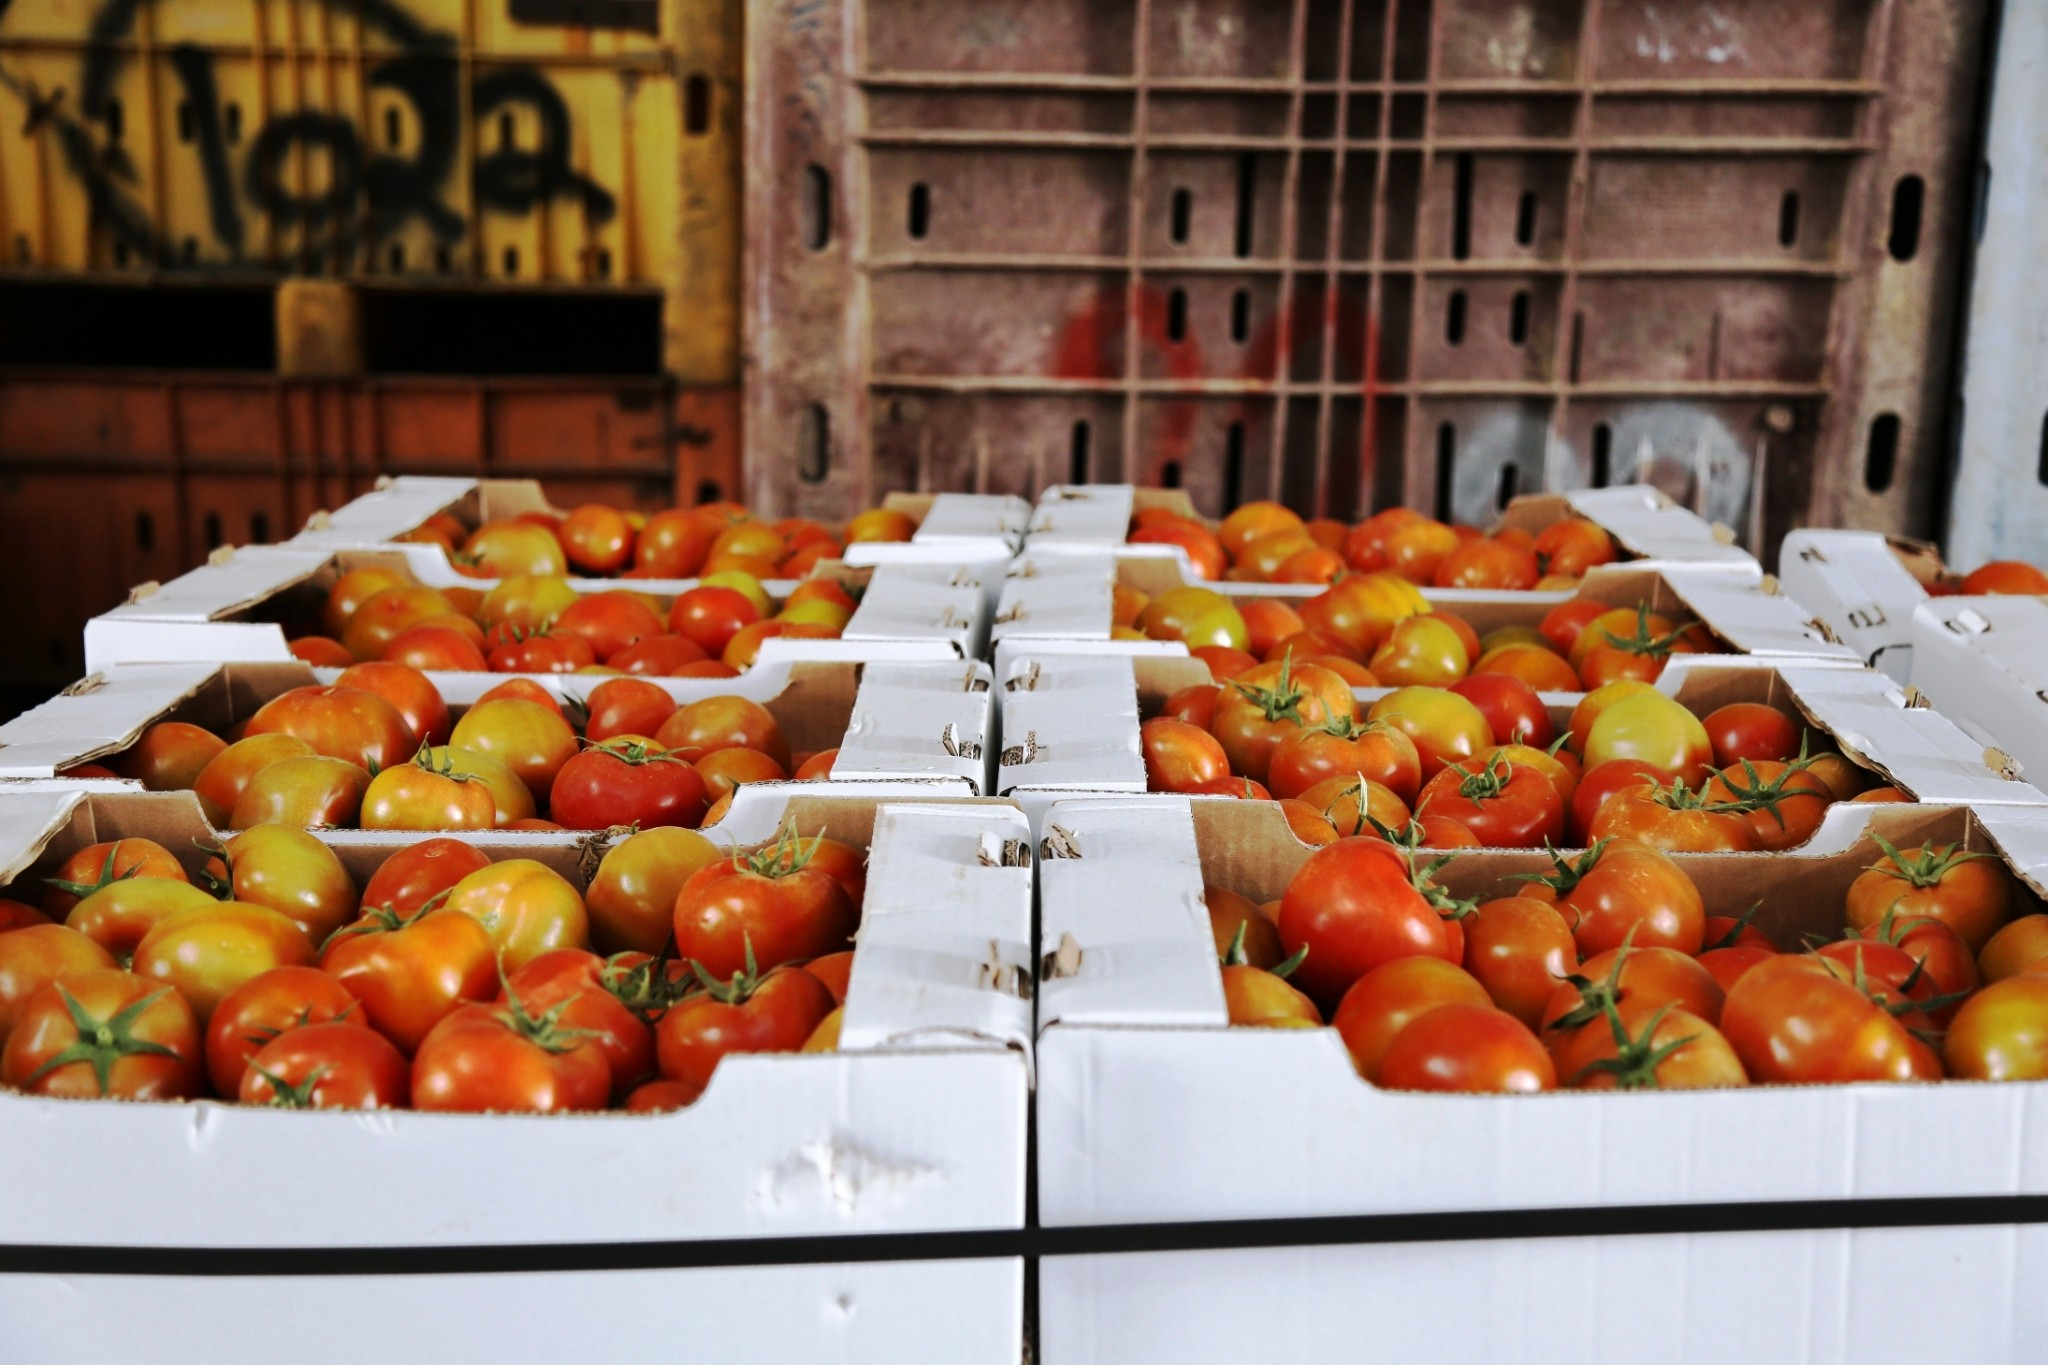 The first shipment of Gaza tomatoes to be sold in Israel following an 8-year ban. March 2015. Photo by Gisha